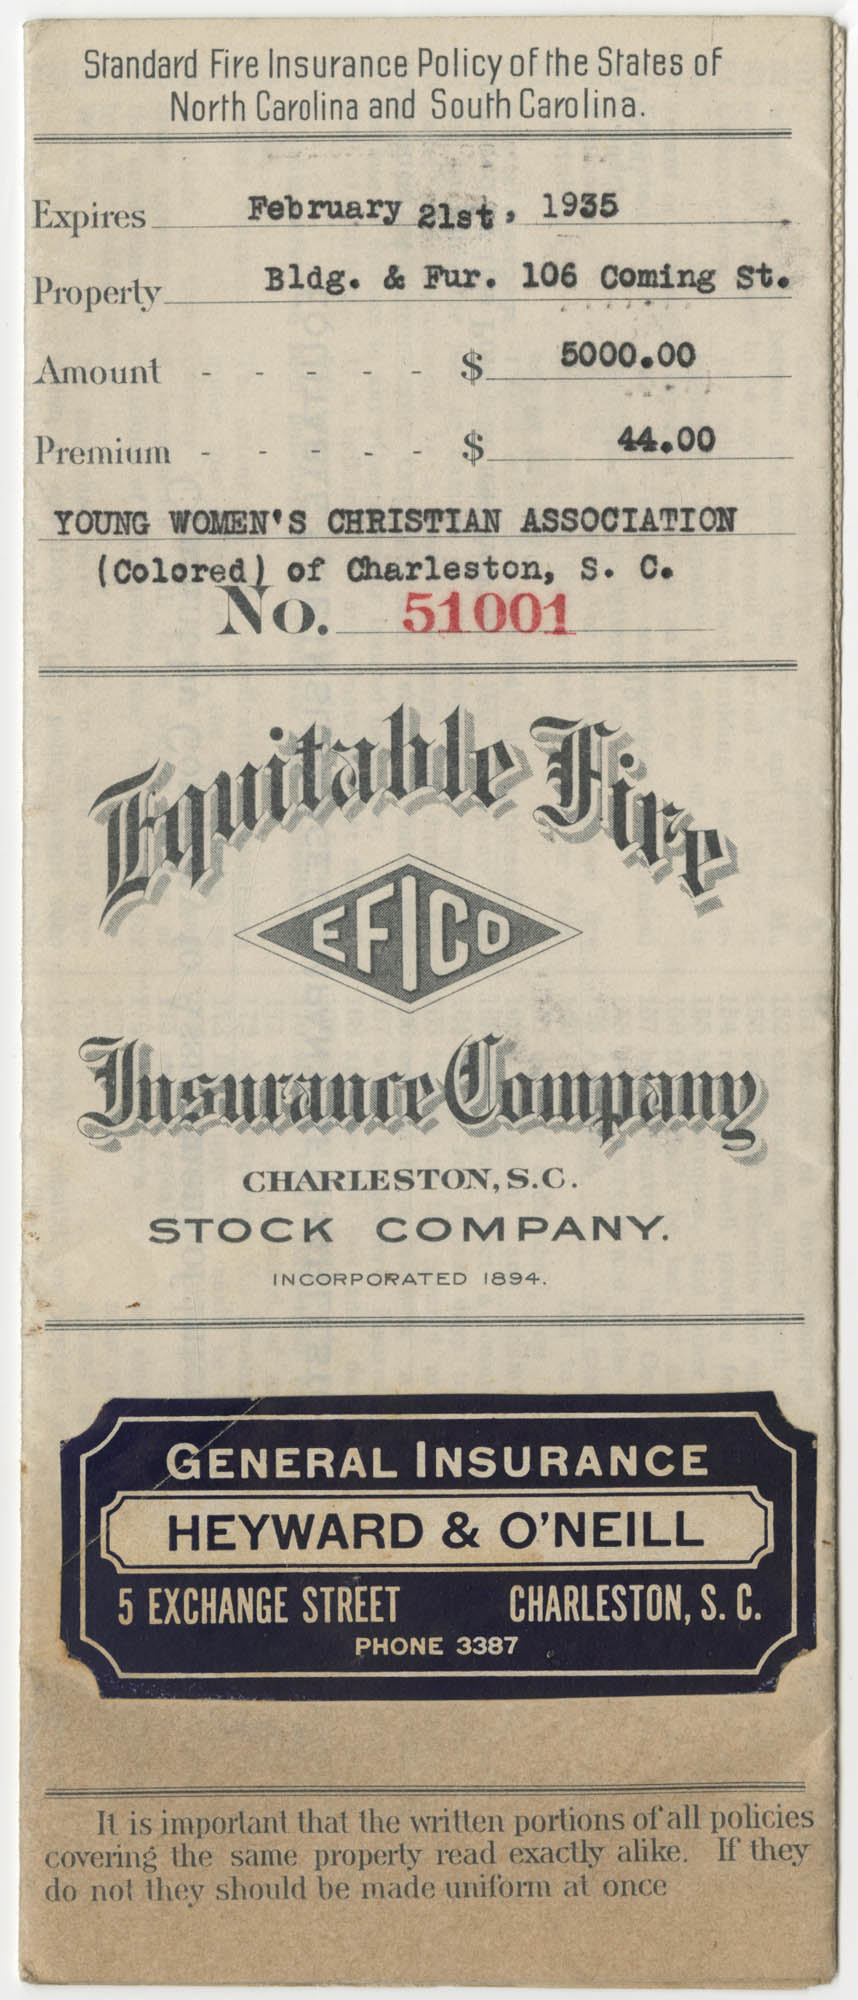 Standard Fire Insurance Policy, The Young Women's Colored Christian Association of Charleston, S. C., 1934 to 1935